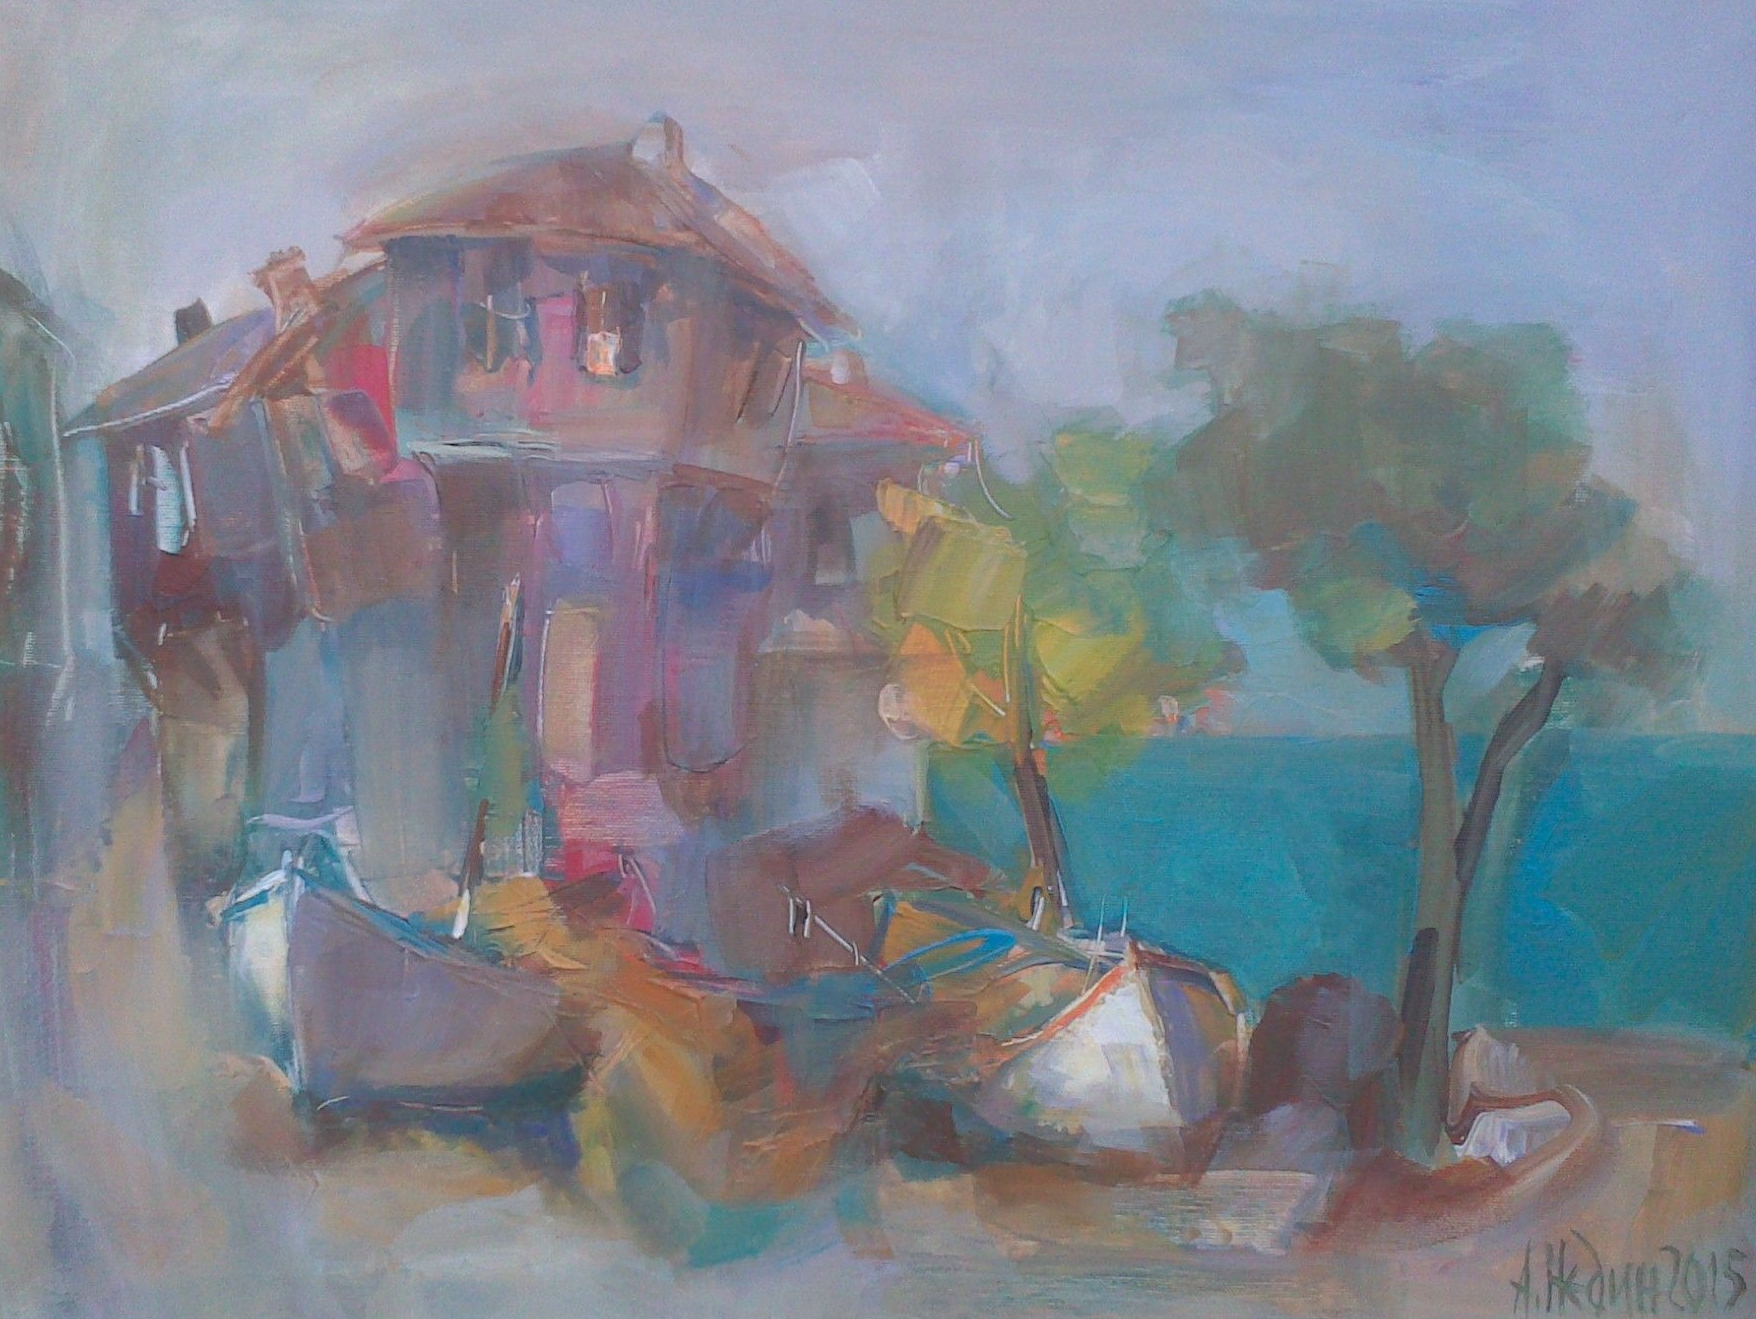 Old House and Boats Painting Angelina Nedin